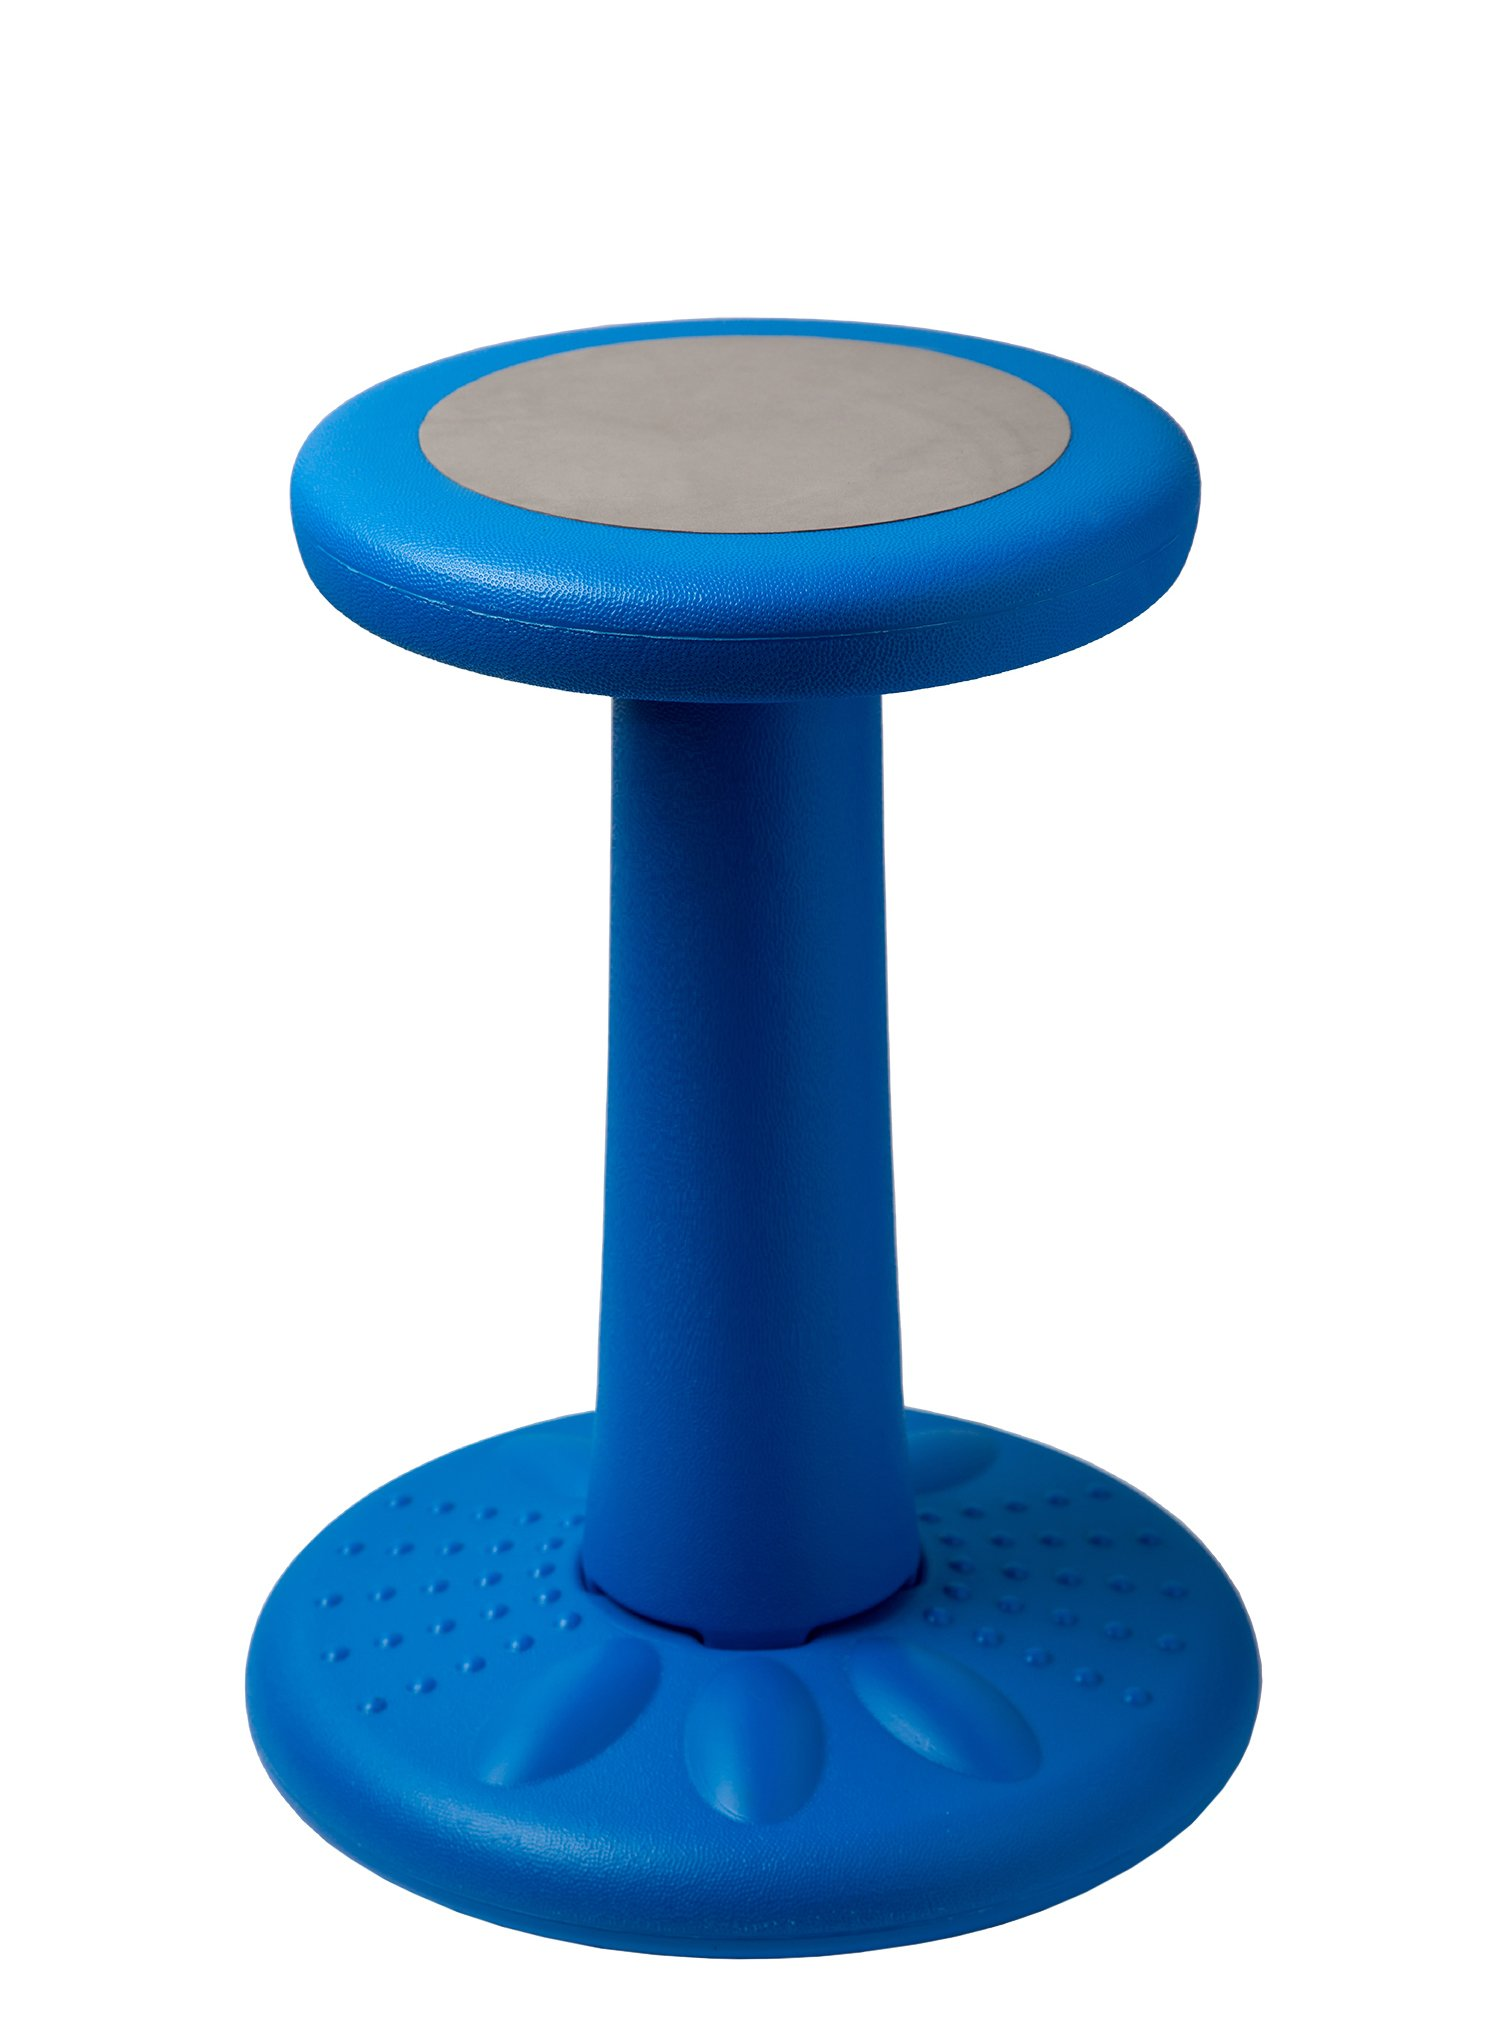 Active Kids Chair - Wobble Chairs Juniors/Pre-Teens (Grades 3-7) - Children Who Can't Sit Still - Great 17.75'' Wobble Chair Kids ADD/ADHD - Corrects Posture | Blue - Age Range 7-12y by Comfify (Image #1)